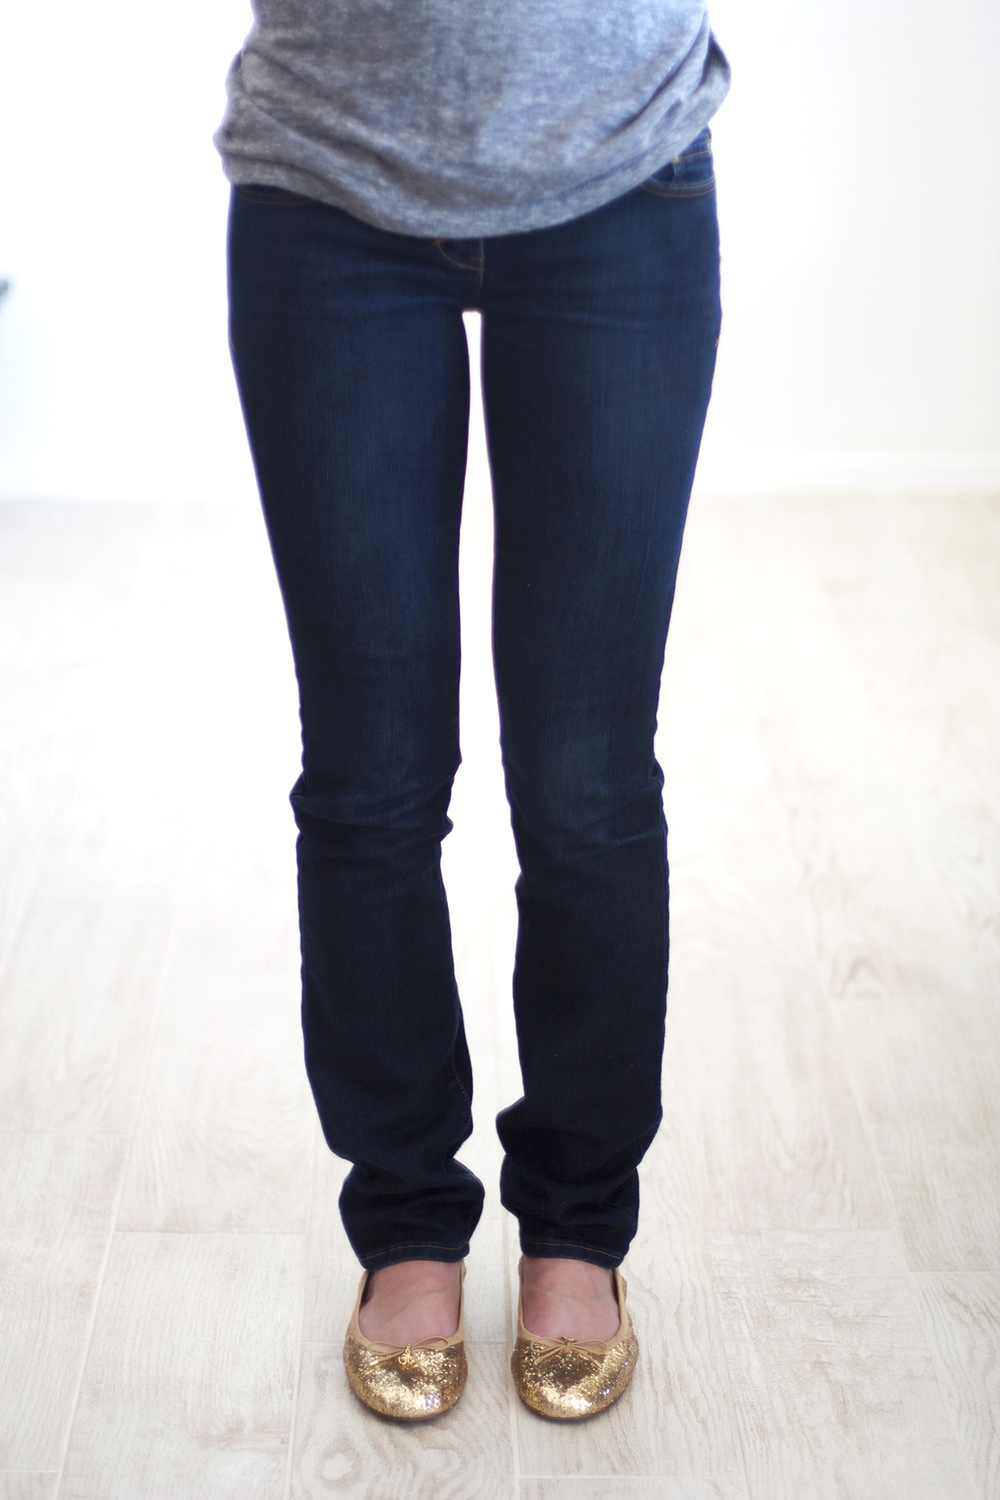 can you hem jeans